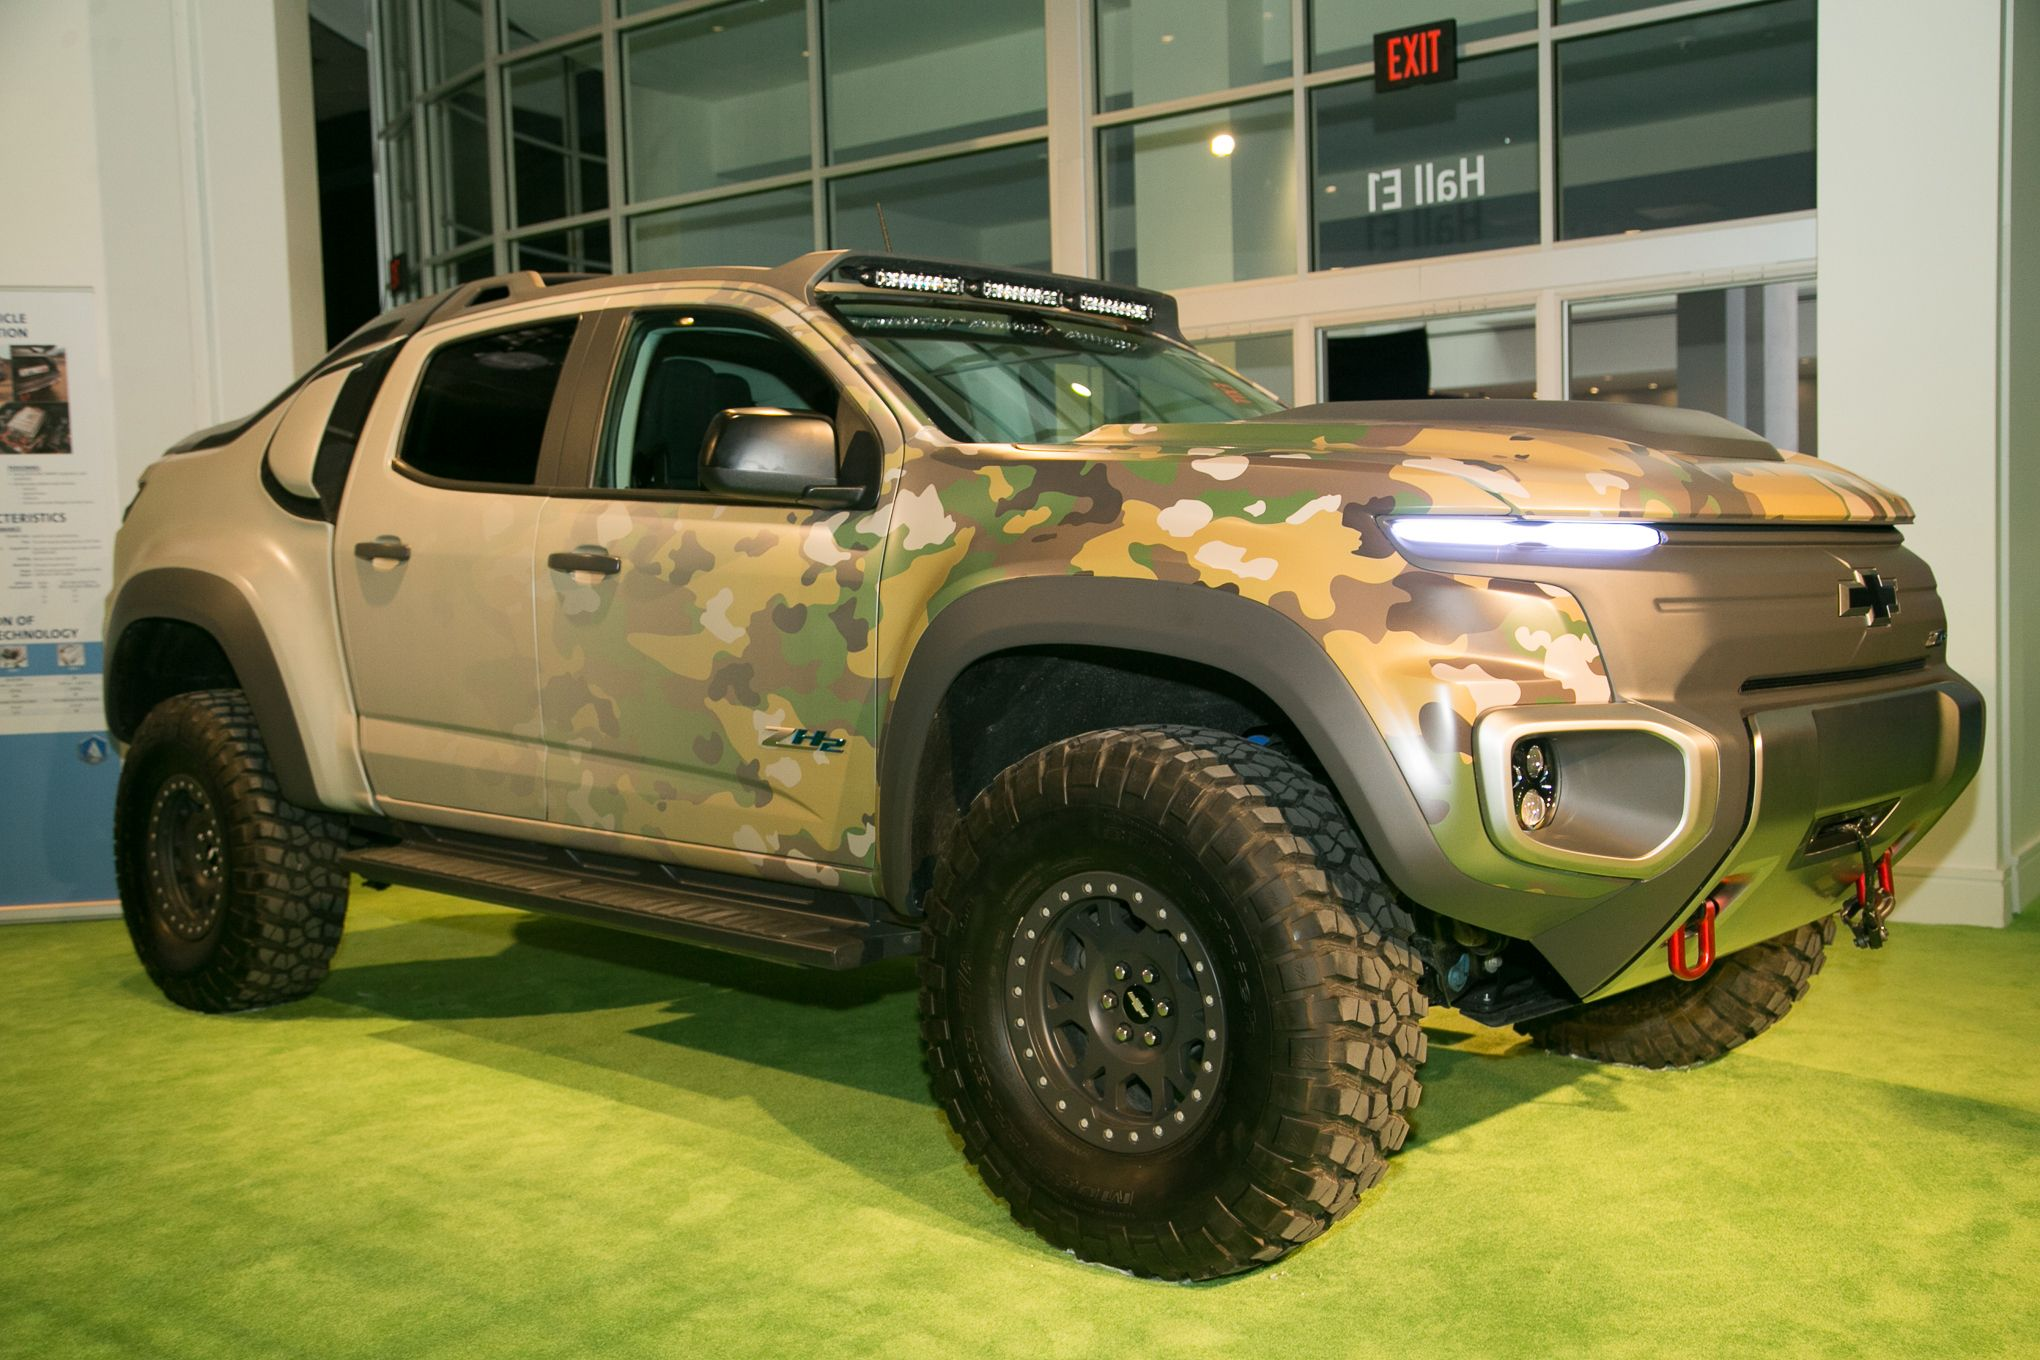 The Chevrolet Colorado Zh2 Fuel Cell Previews The Future Of